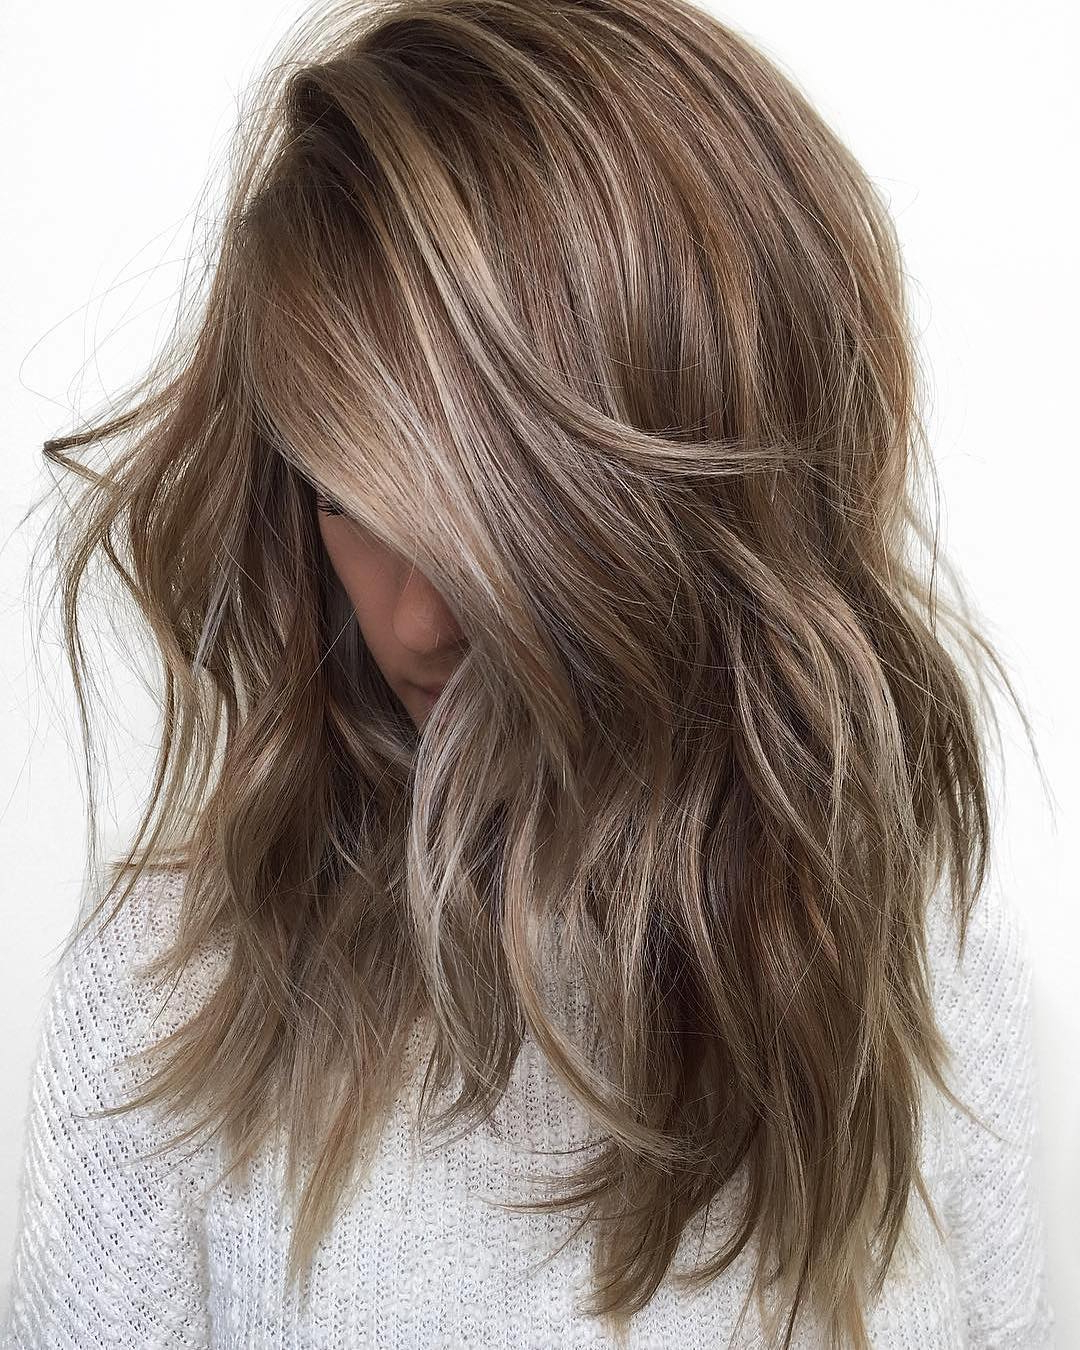 10 Balayage Ombre Hair Styles For Shoulder Length Hair, Women Throughout Chic Chocolate Layers Hairstyles (View 14 of 20)